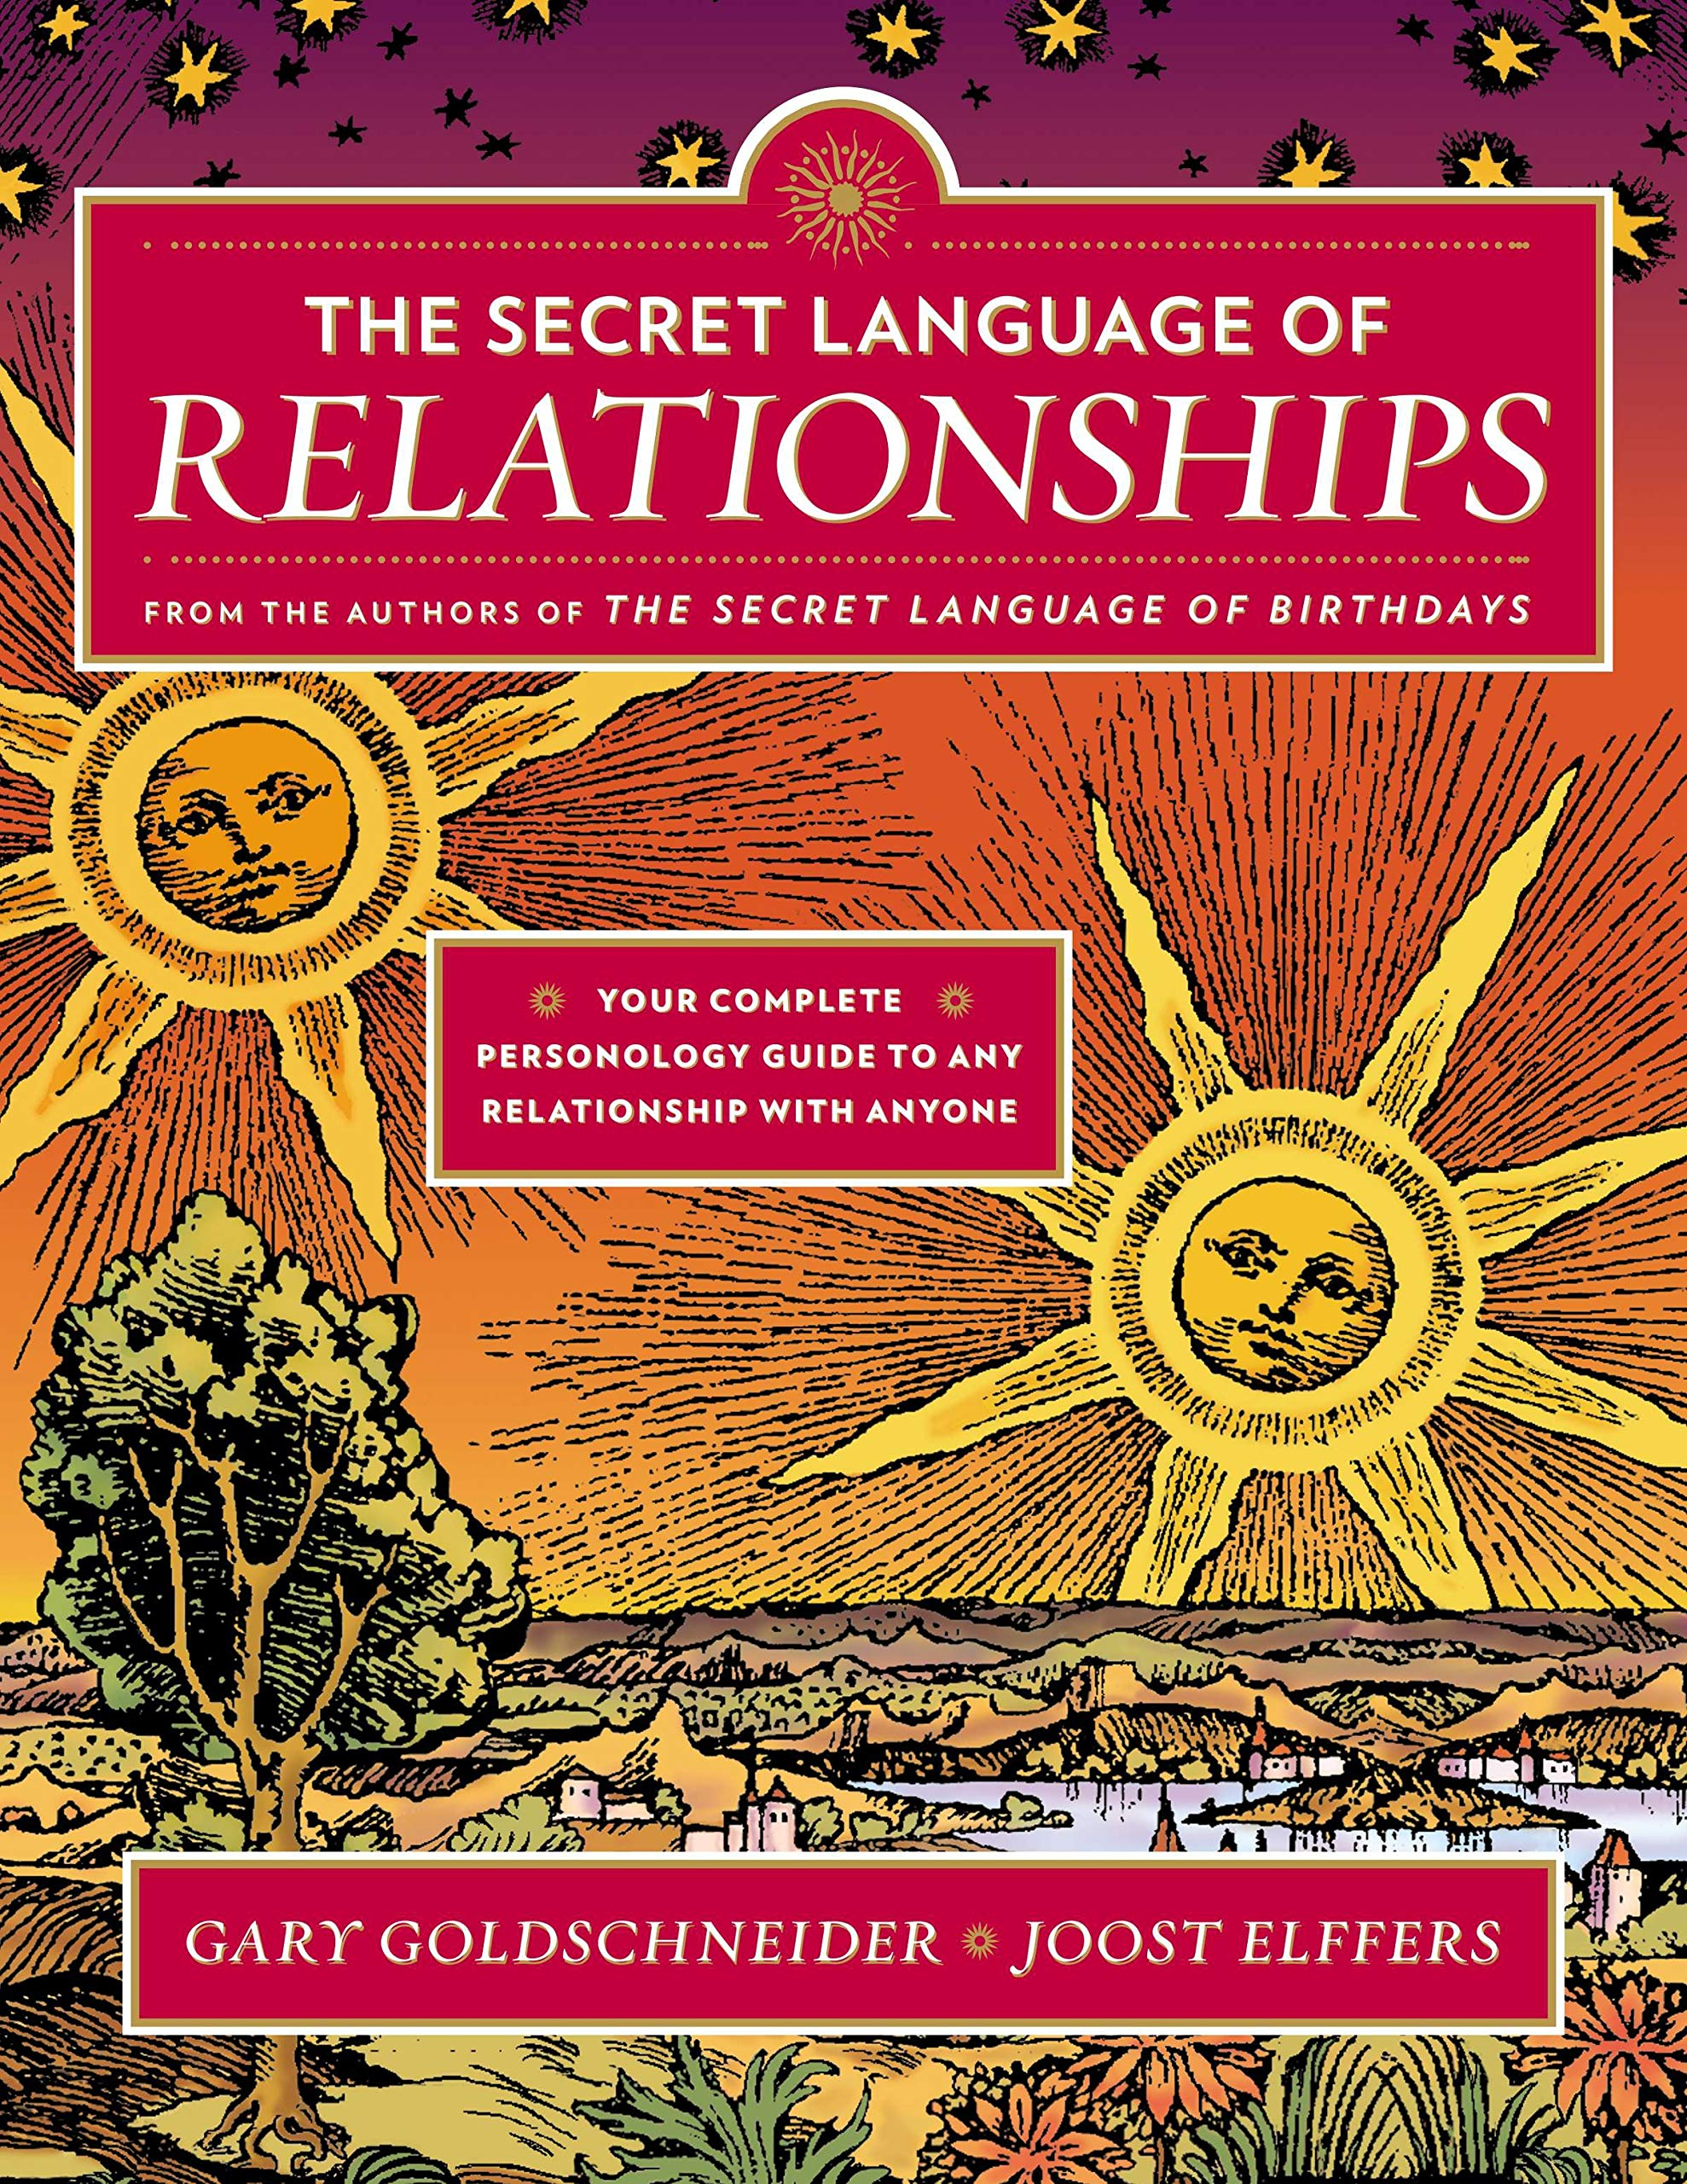 The Secret Language of Relationships: Your Complete Personology Guide to Any Relationship with Anyone by Penguin Putnam